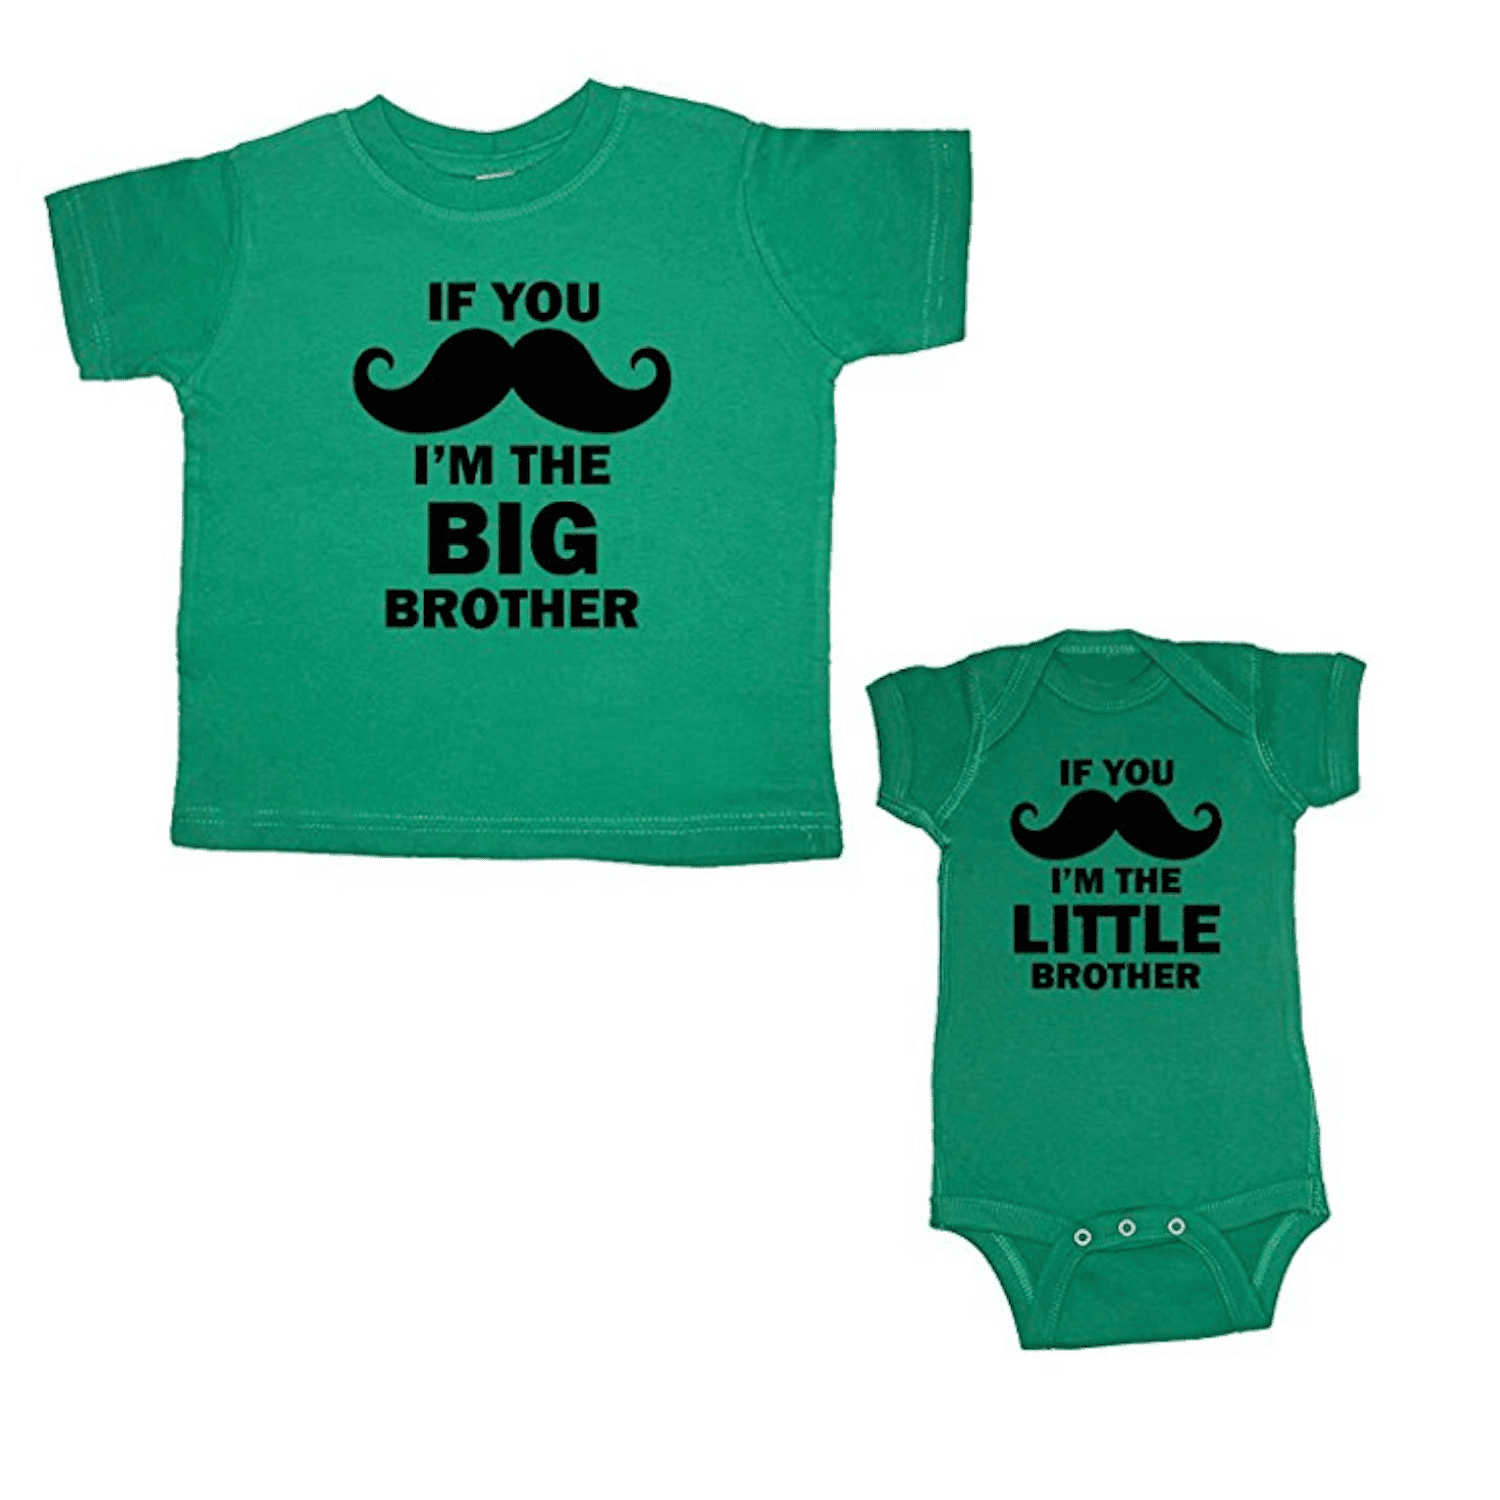 10 Cool Matching T Shirts For Big And Little Brothers And Sisters